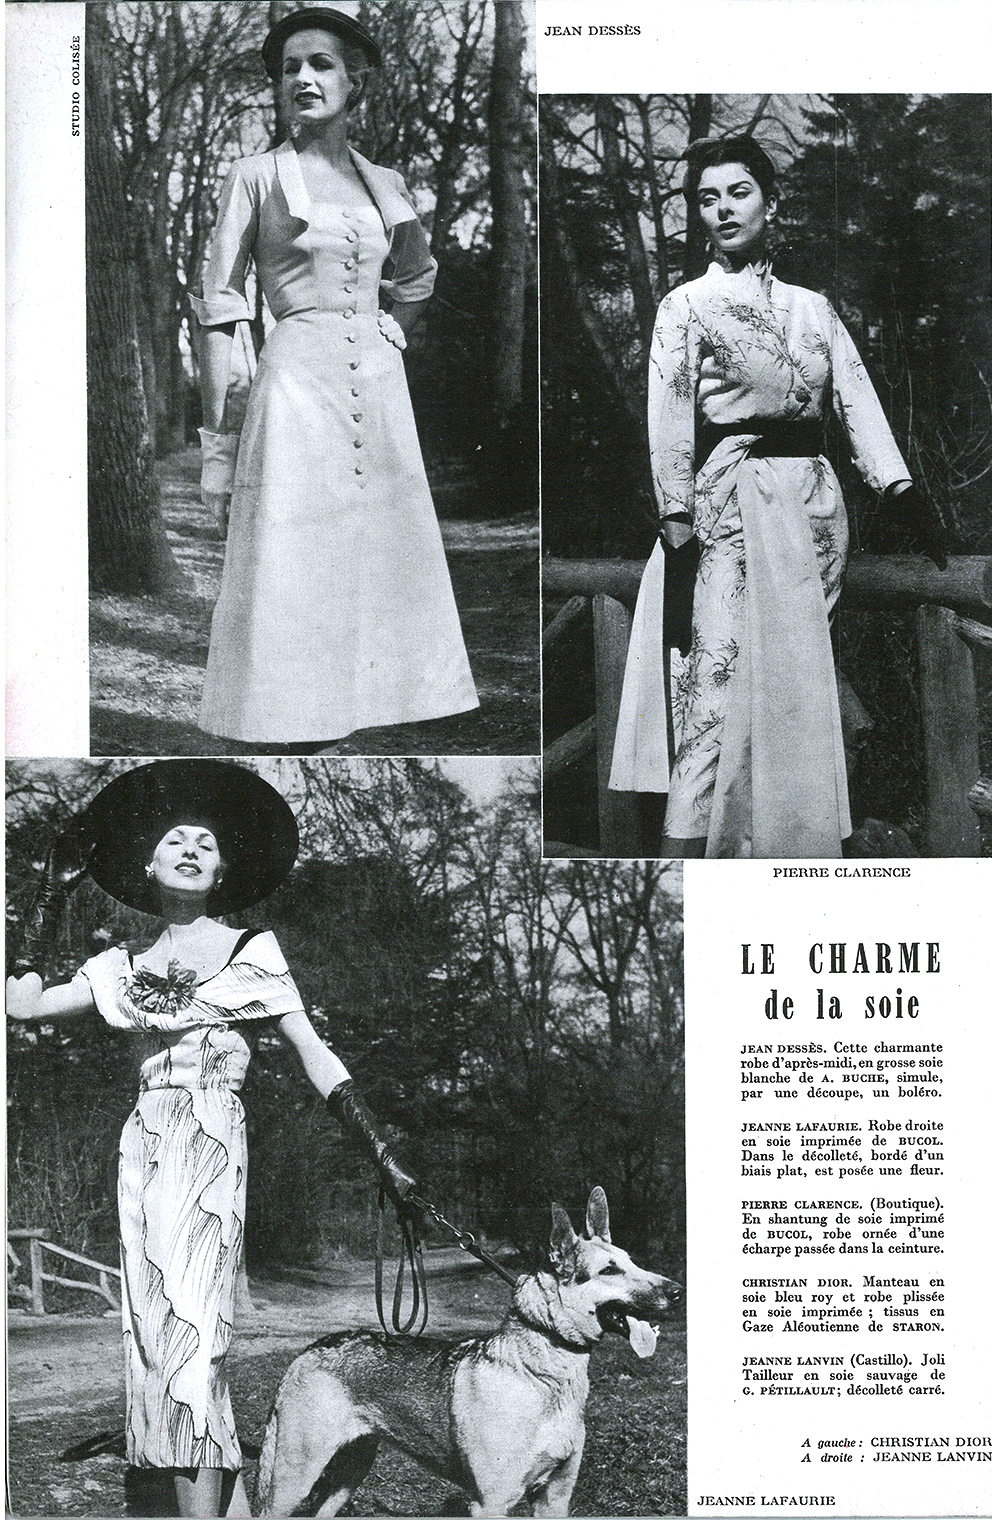 Top left: dress by Jean Dessès, Top right: Pierre Clarence, bottom: Jeanne Lafaurie